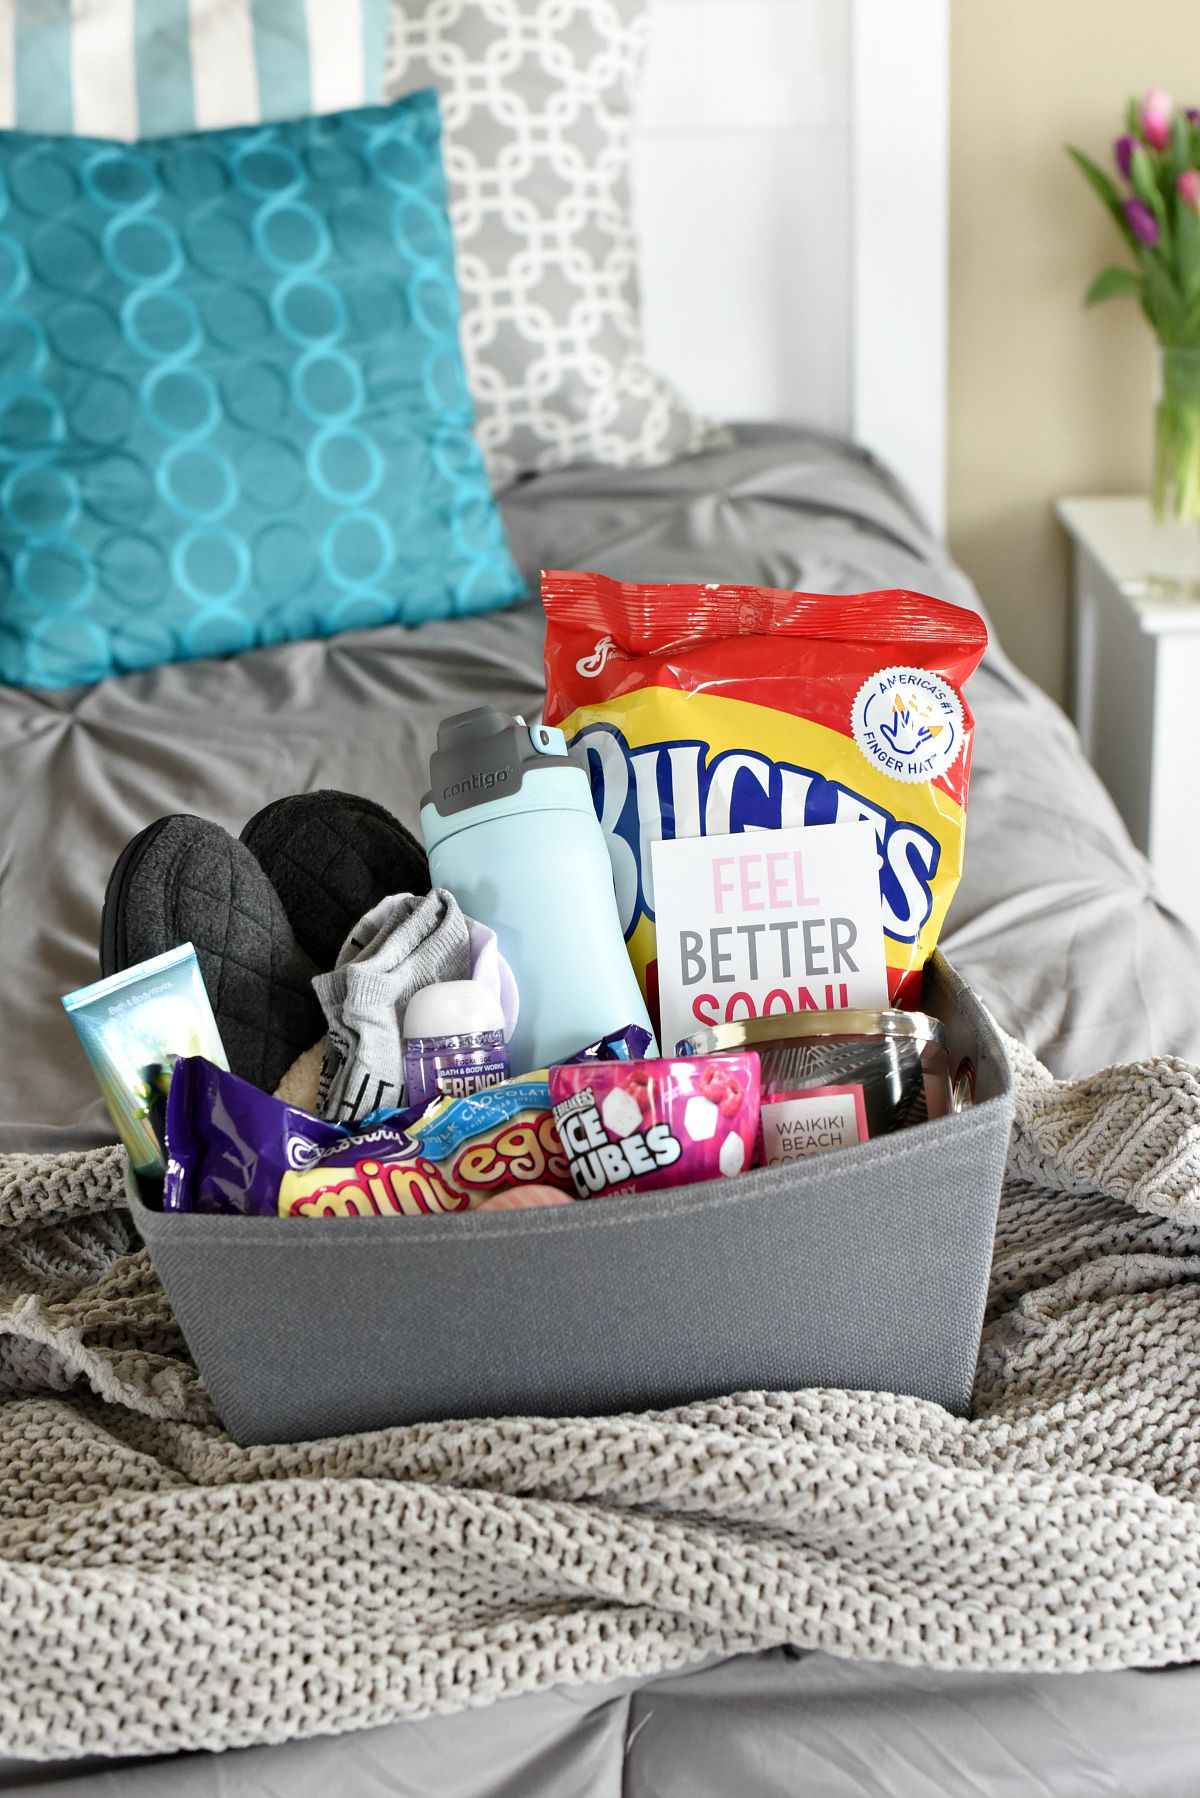 Get Well Soon Gift Ideas Gift Baskets Get Well Soon